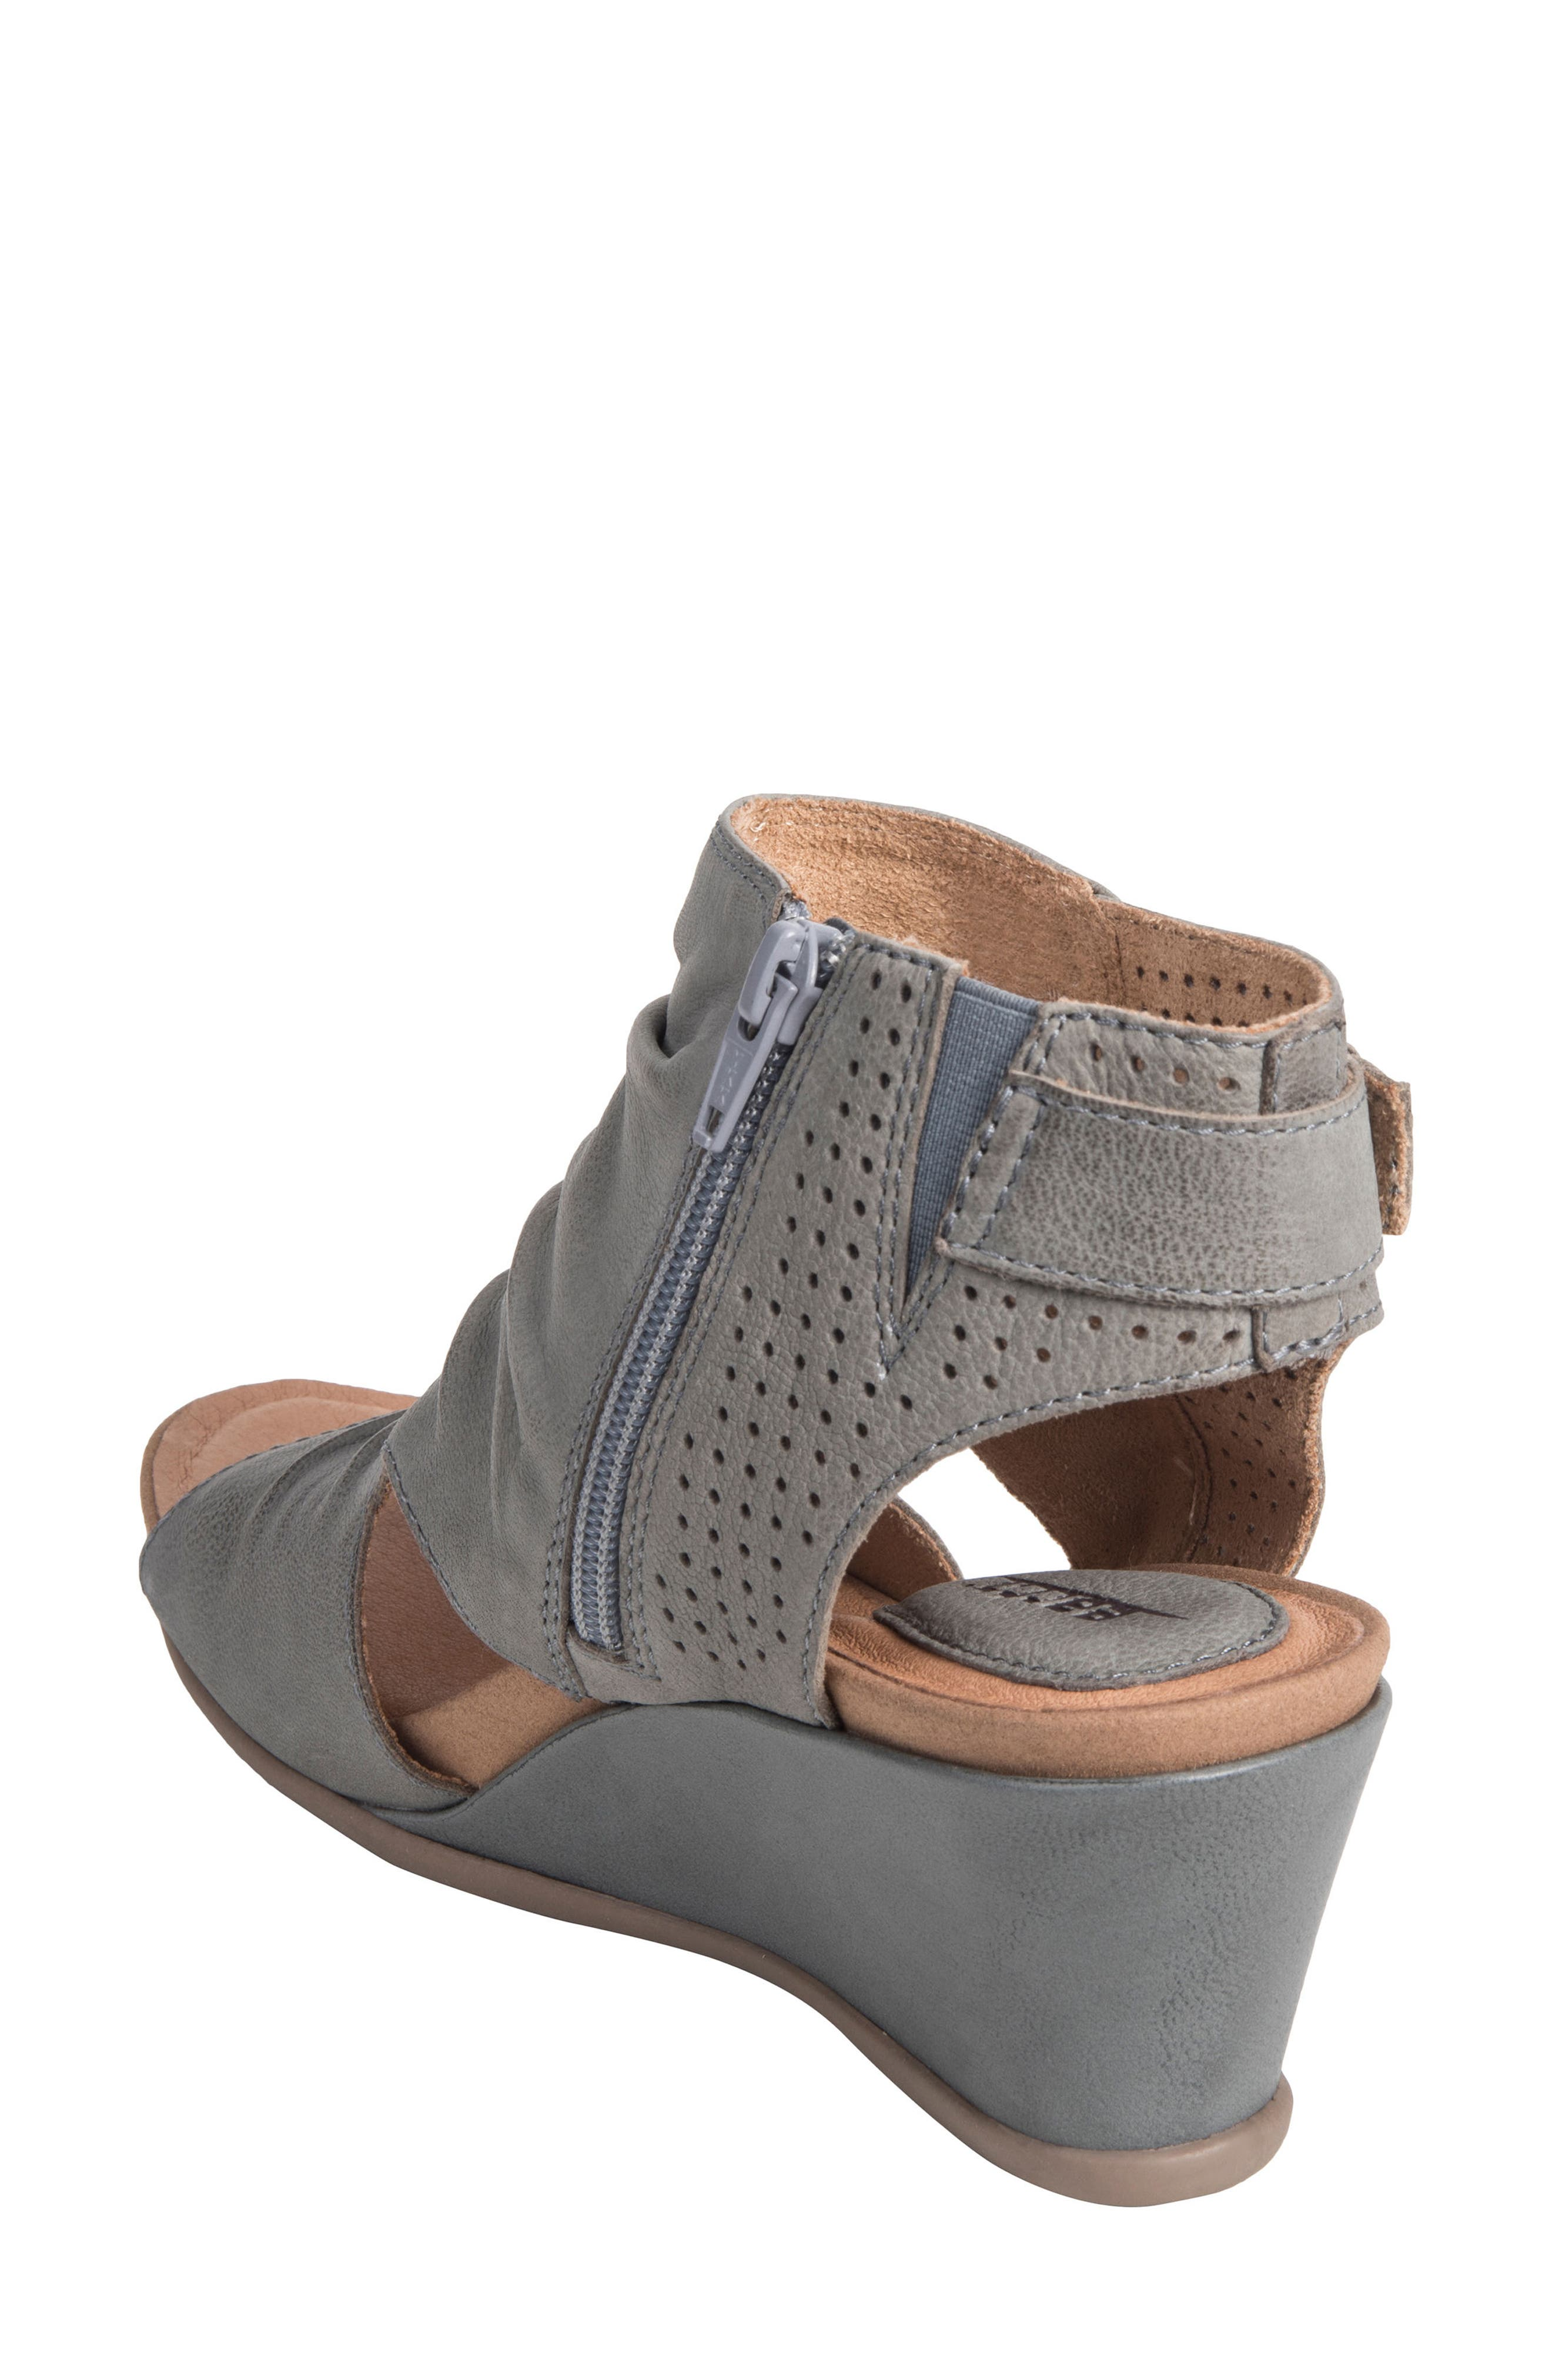 Sweetpea Wedge,                             Alternate thumbnail 7, color,